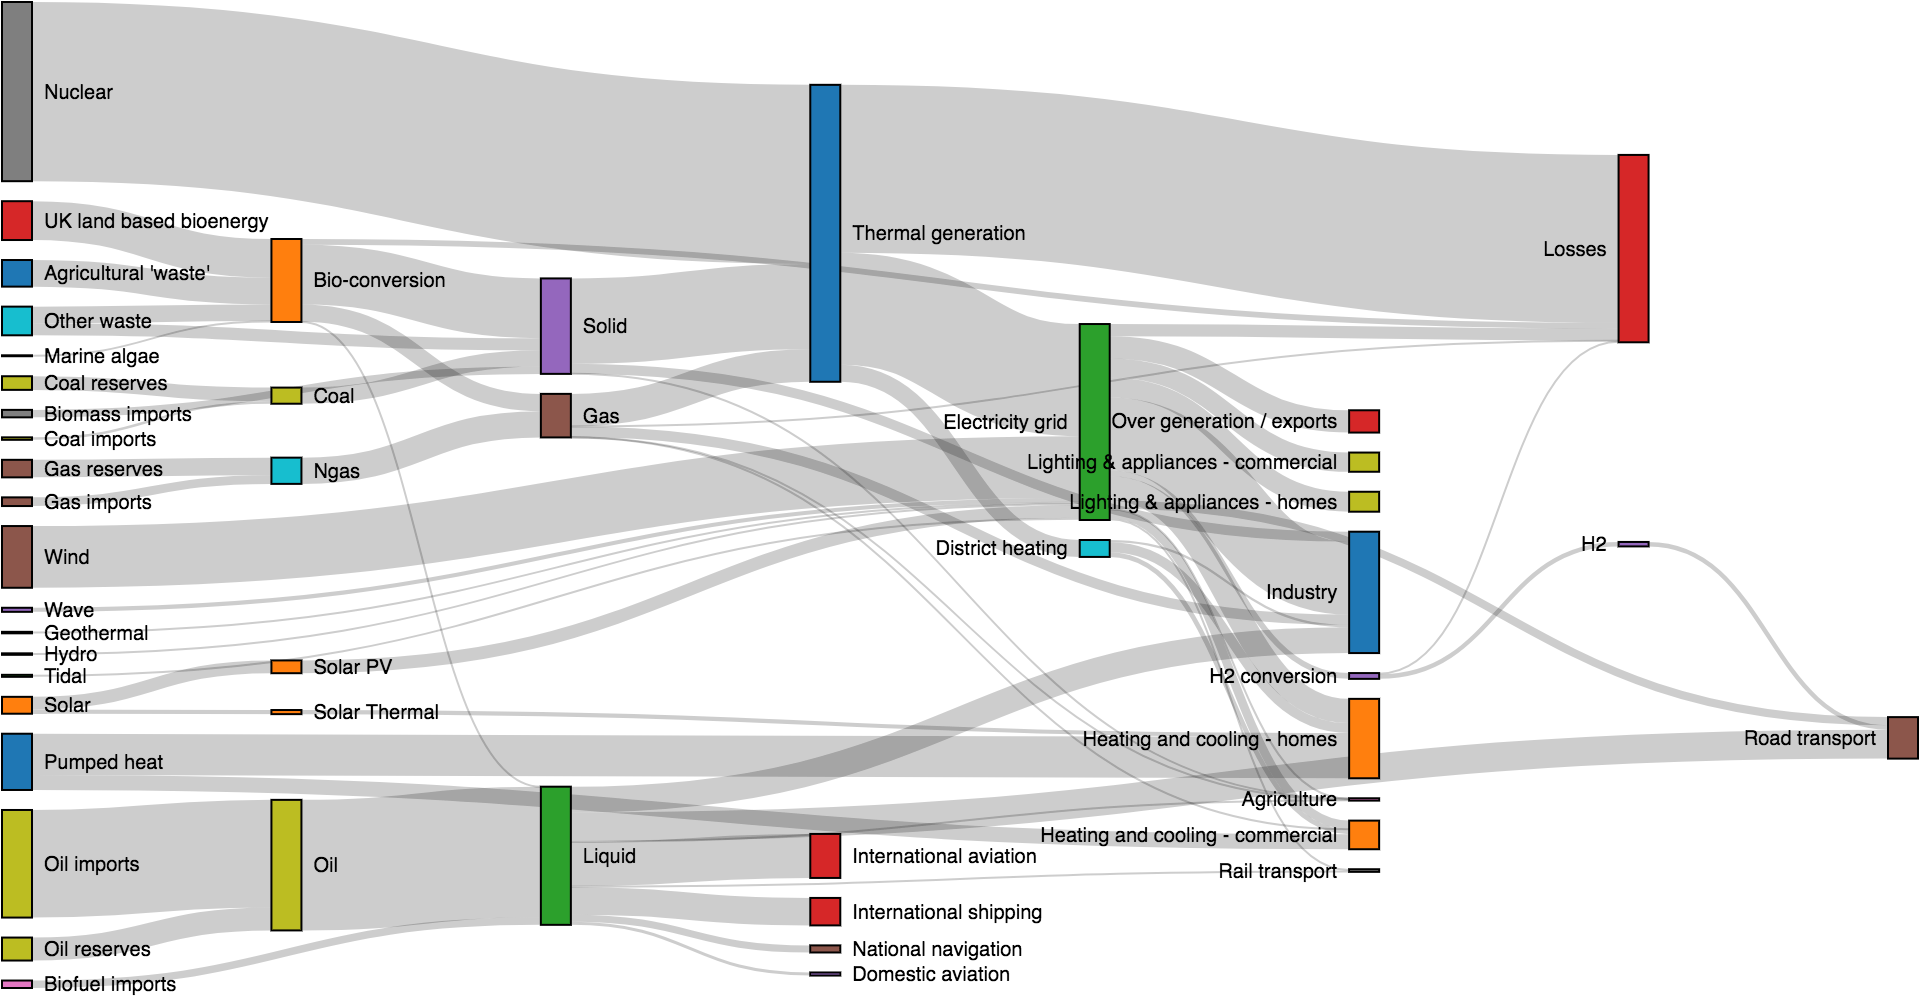 hight resolution of sankey diagram 3d wiring diagram expertsankey diagram 3d wiring diagram for you github d3 d3 sankey